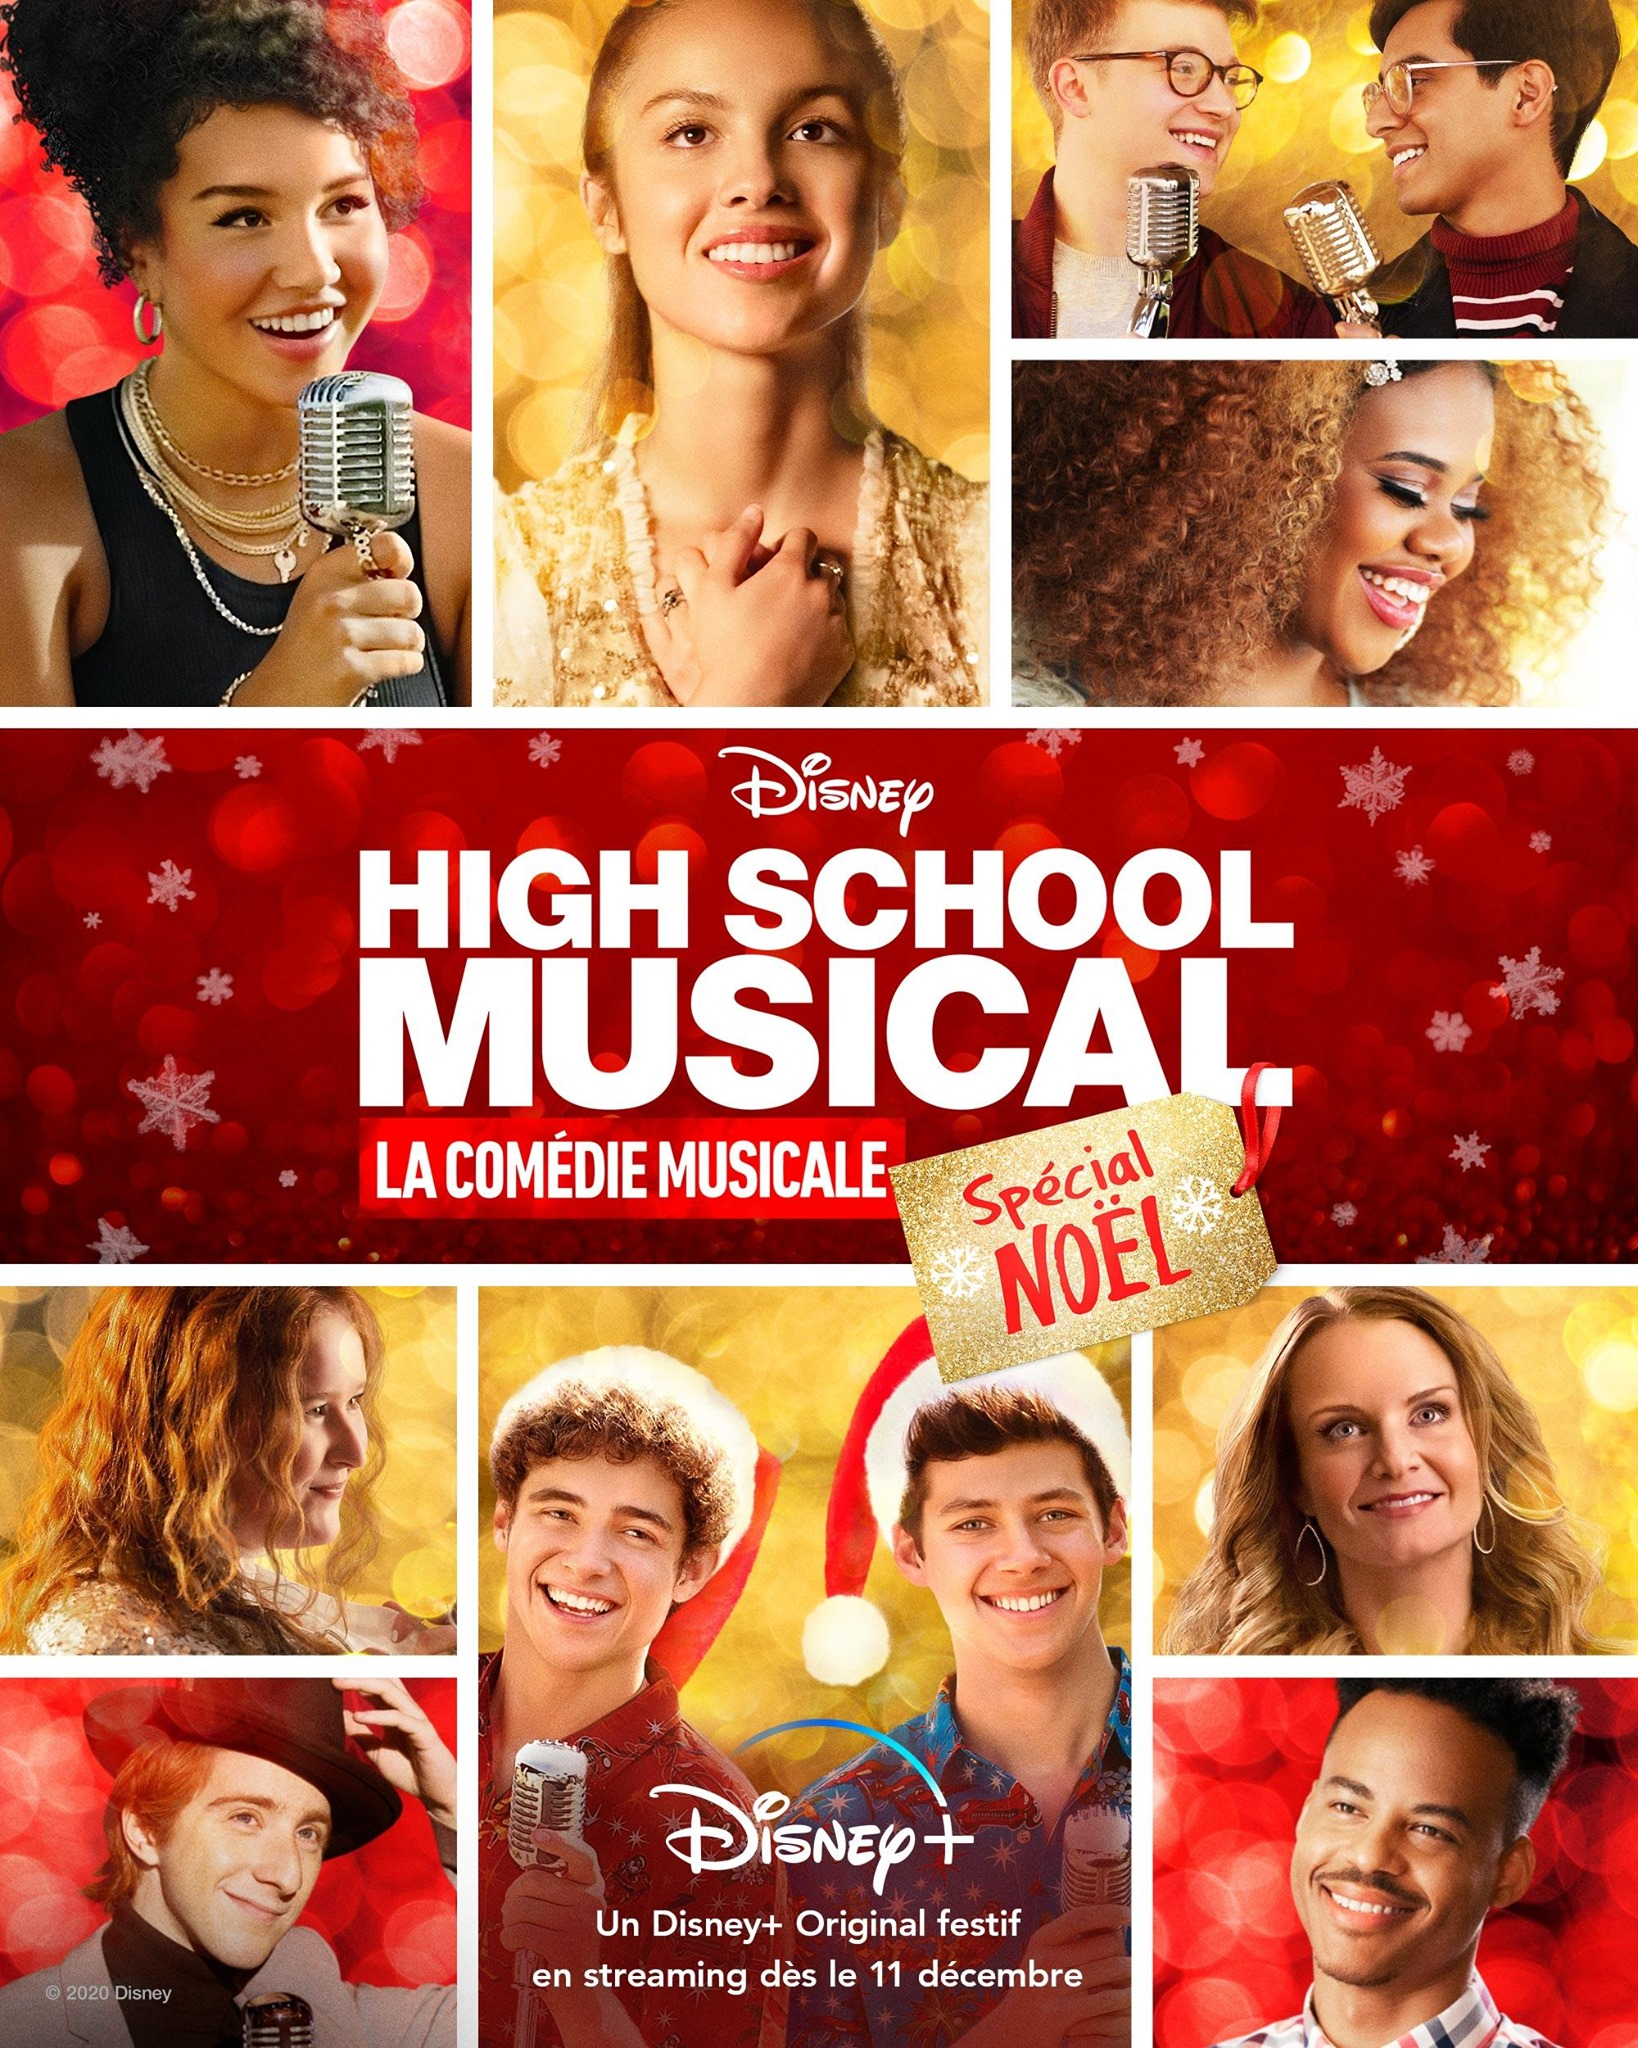 affiche poster high school musical serie special holiday disney